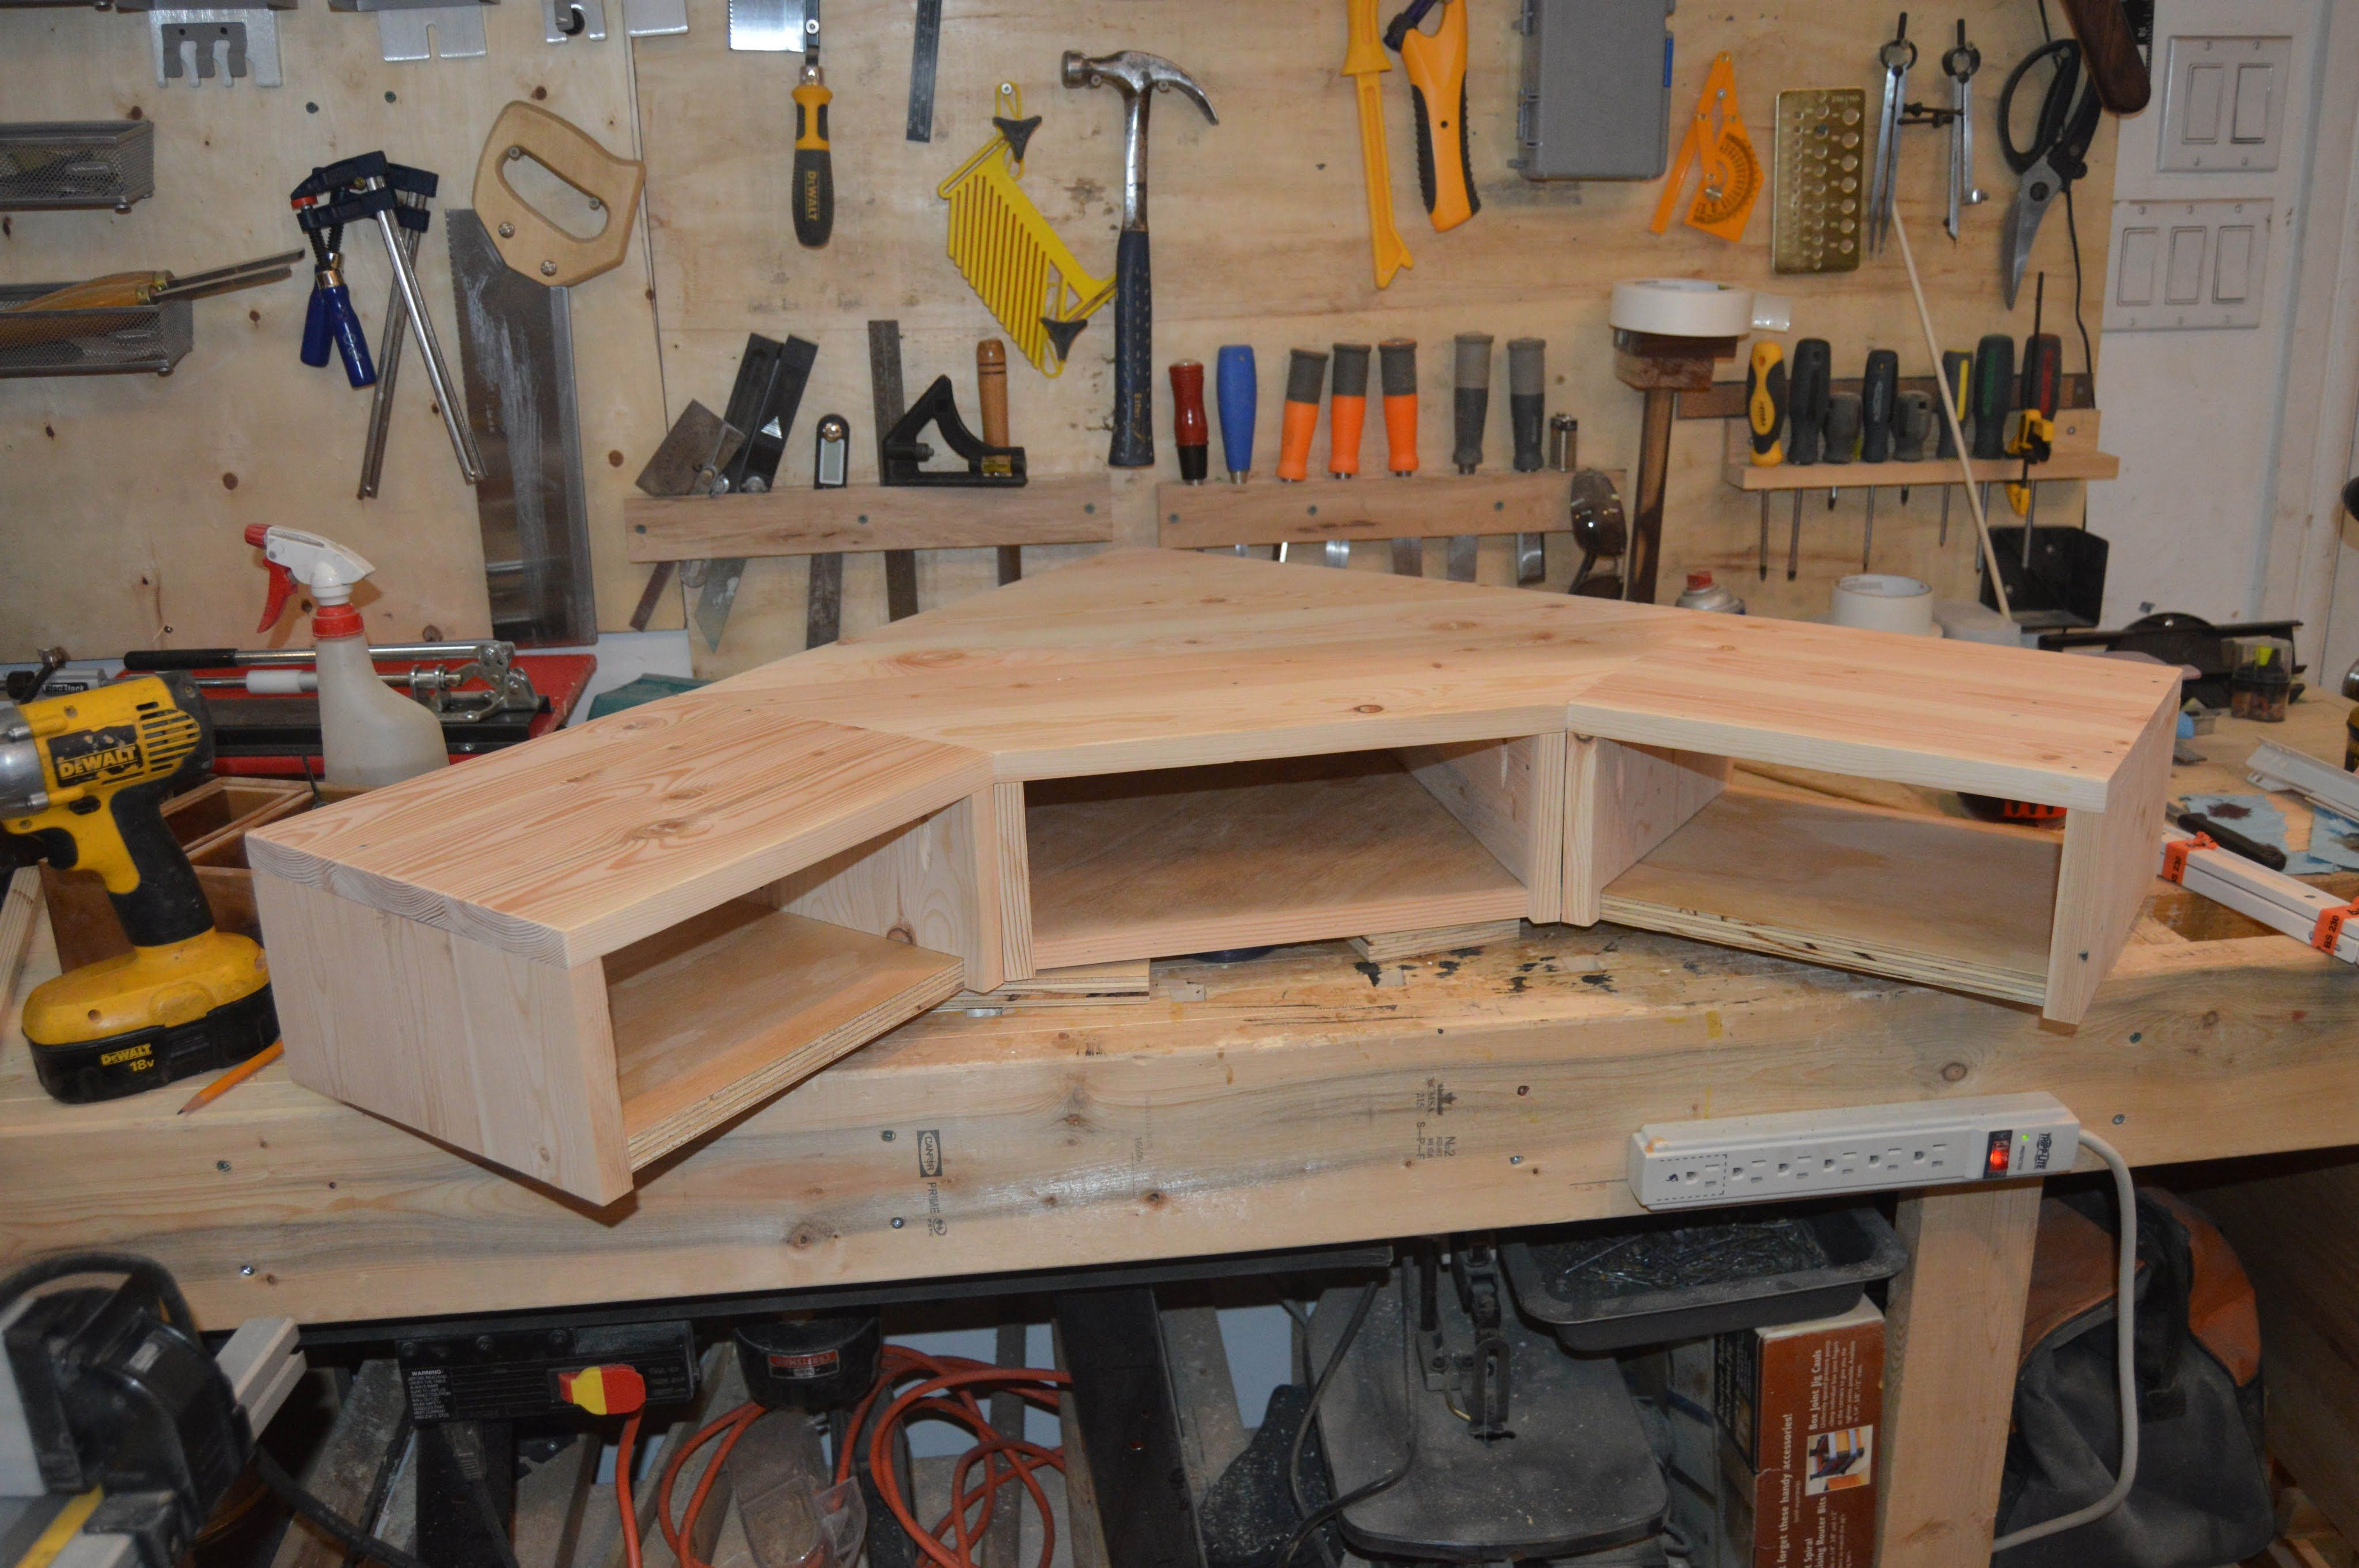 How to make a Pallet Wood Monitor Desk Riser with Drawers Part 1